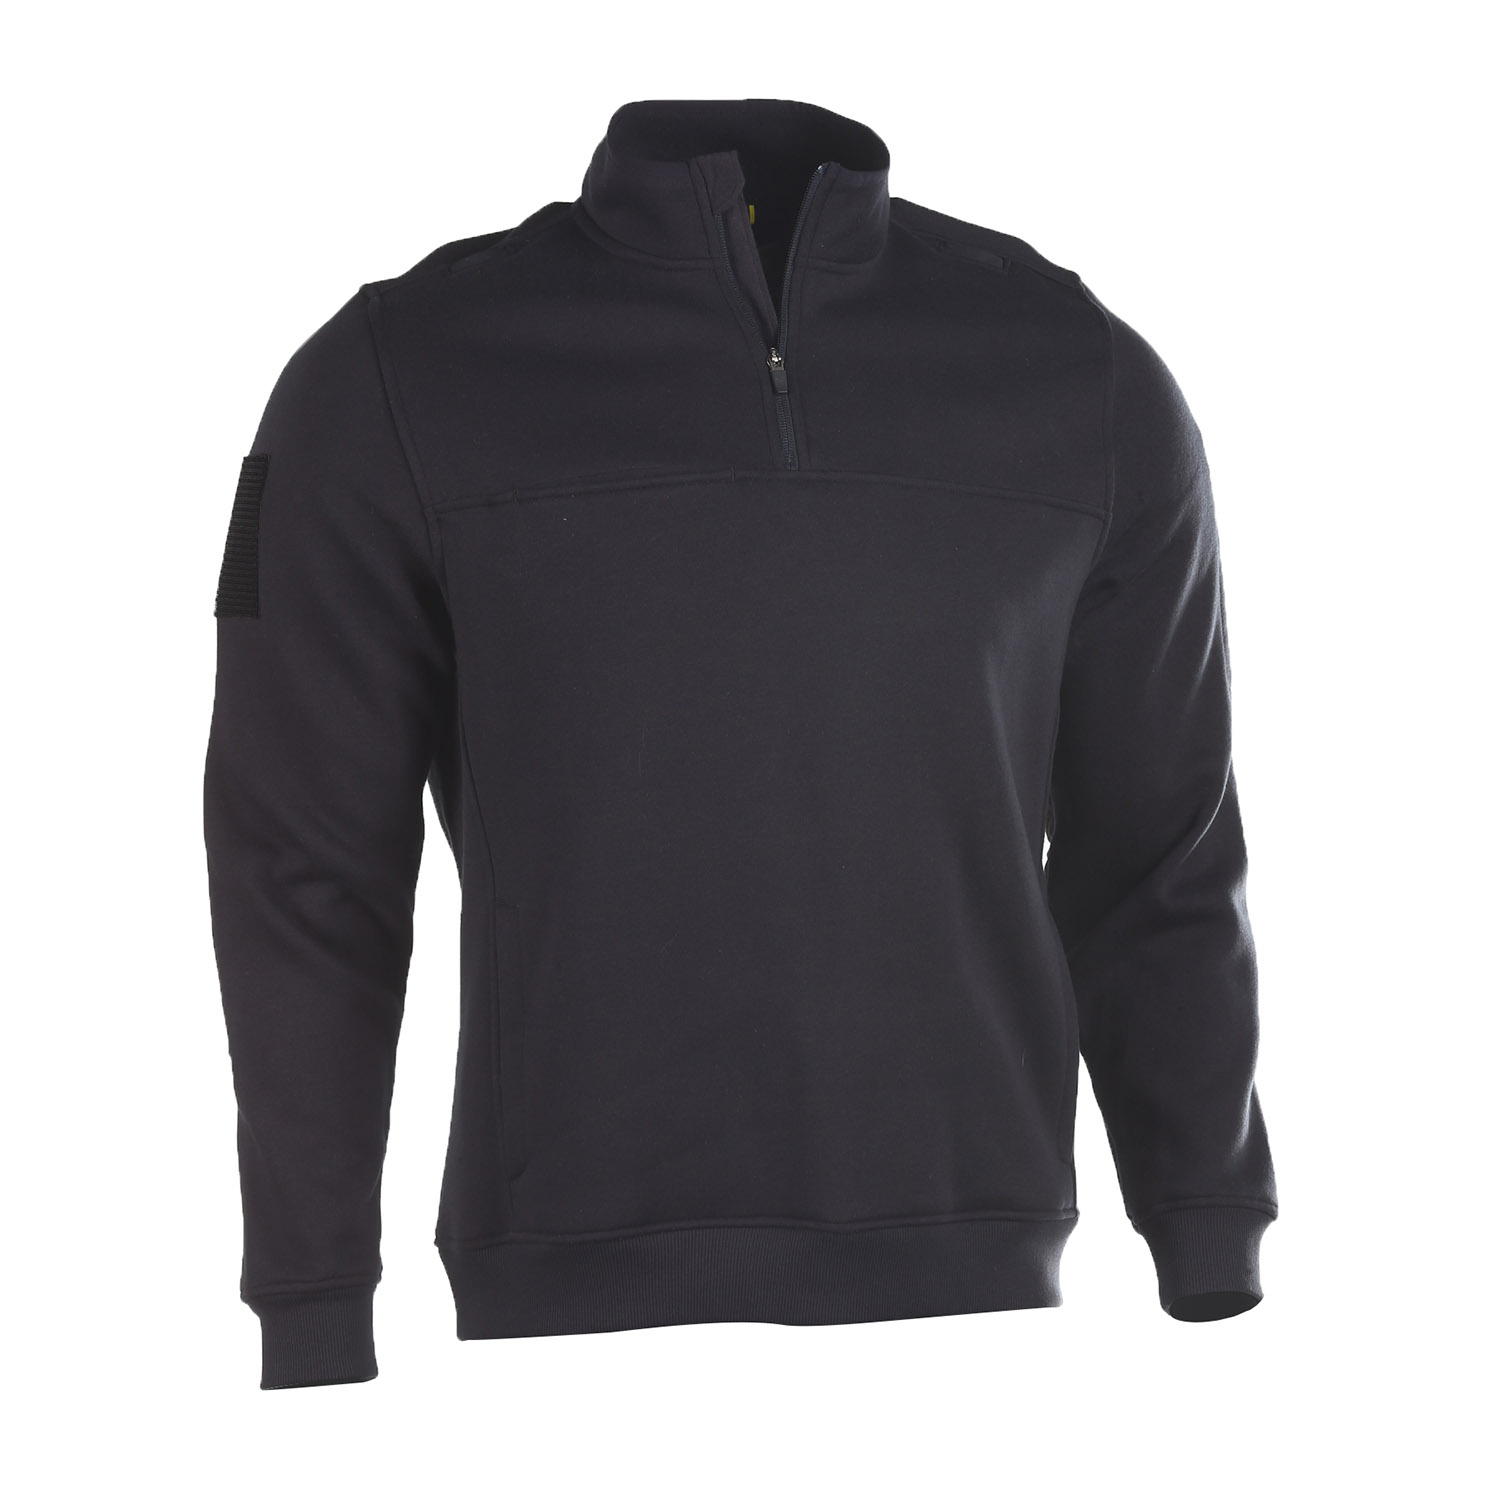 Under Armour Tac Job Fleece